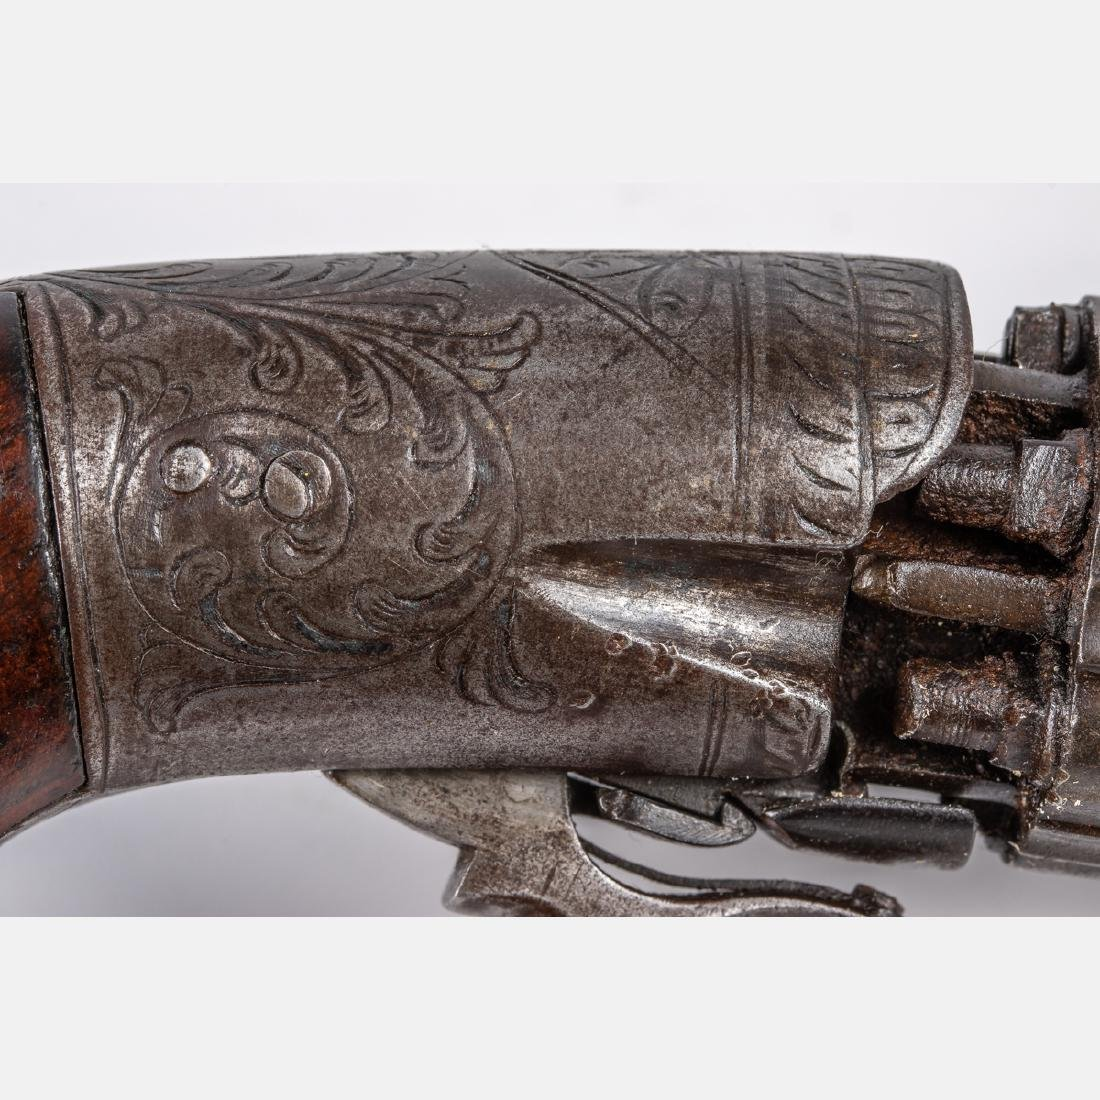 An Antique Six Shot Percussion Pepperbox Revolver, 19th - 4